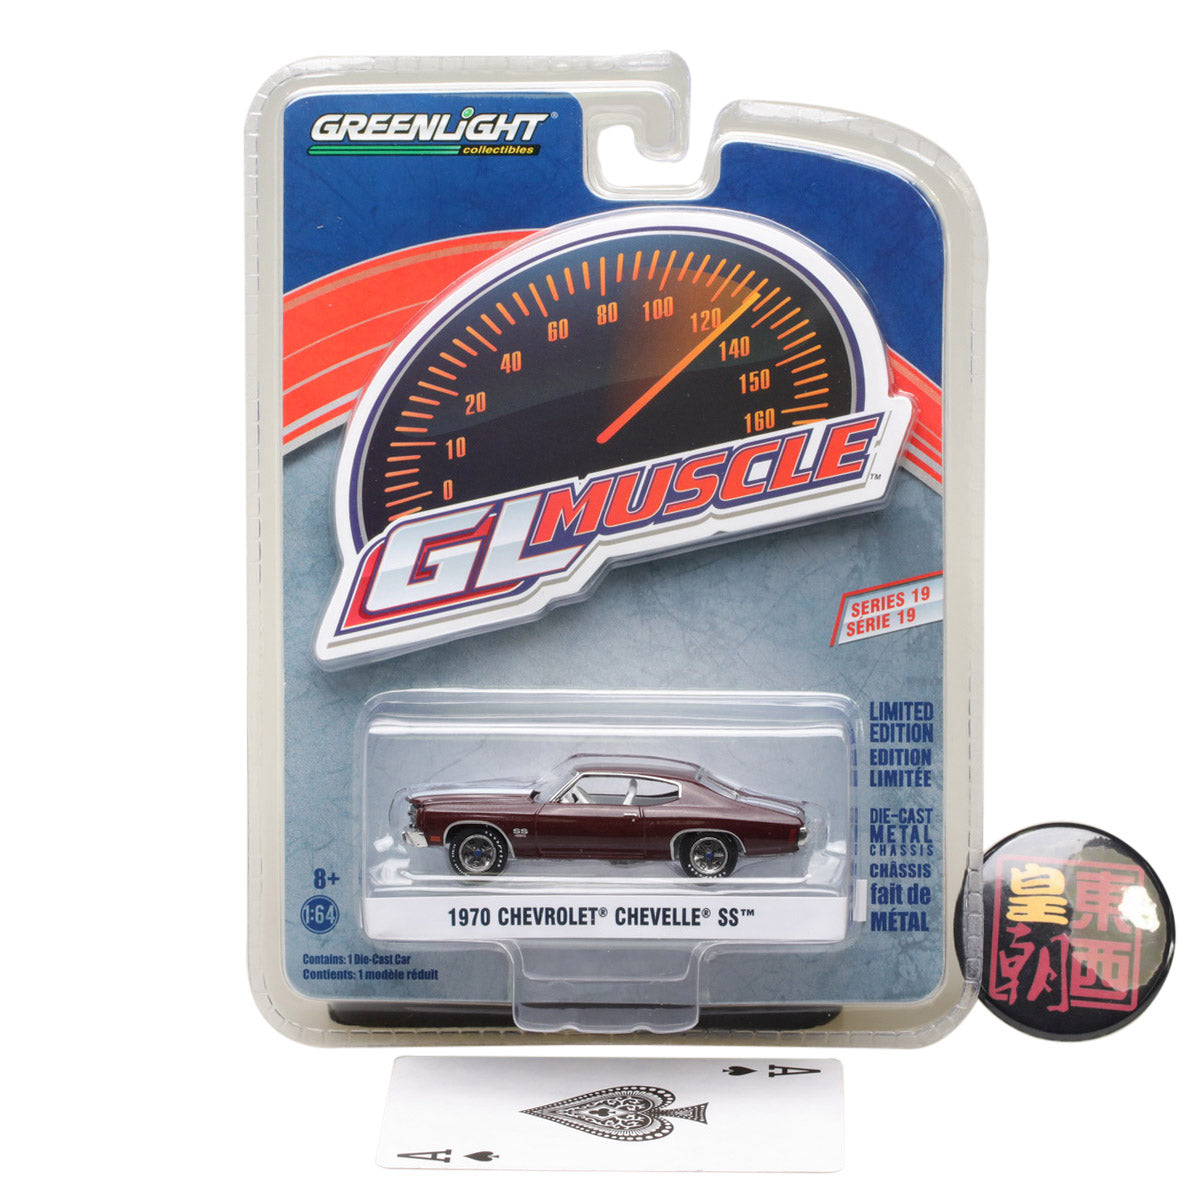 GreenLight 1:64 GreenLight Muscle Series 19 - 1970 Chevrolet Chevelle SS 454 - Black Cherry Diecast Model Car 13190-C